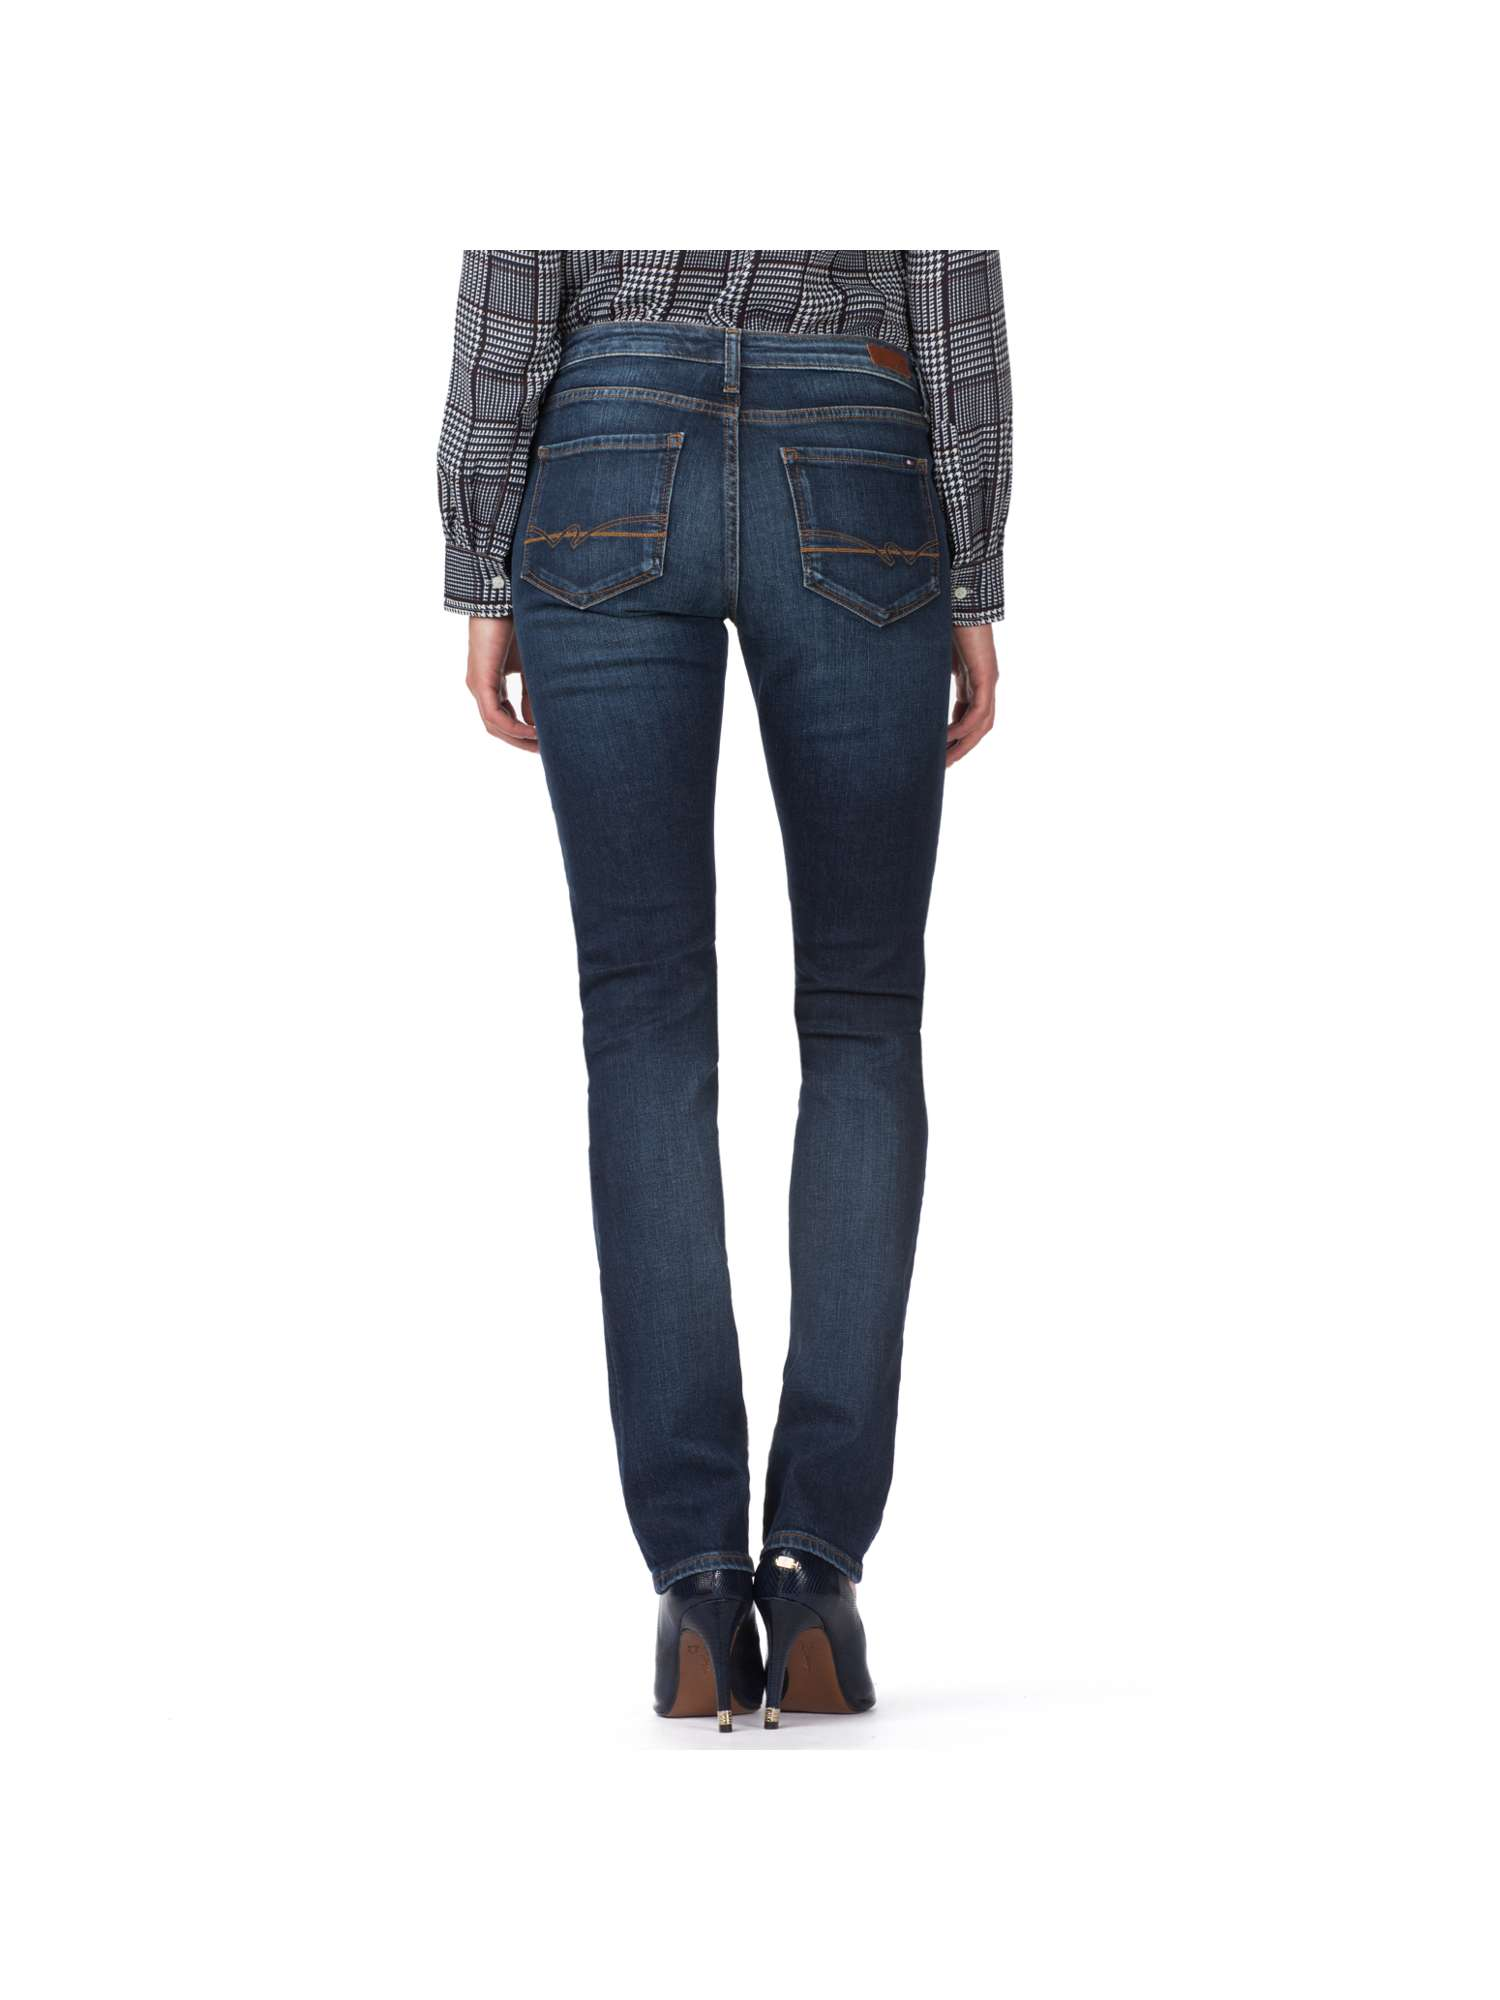 Absolute Tommy Rome Hilfiger Blue Jeans qcSzYAT